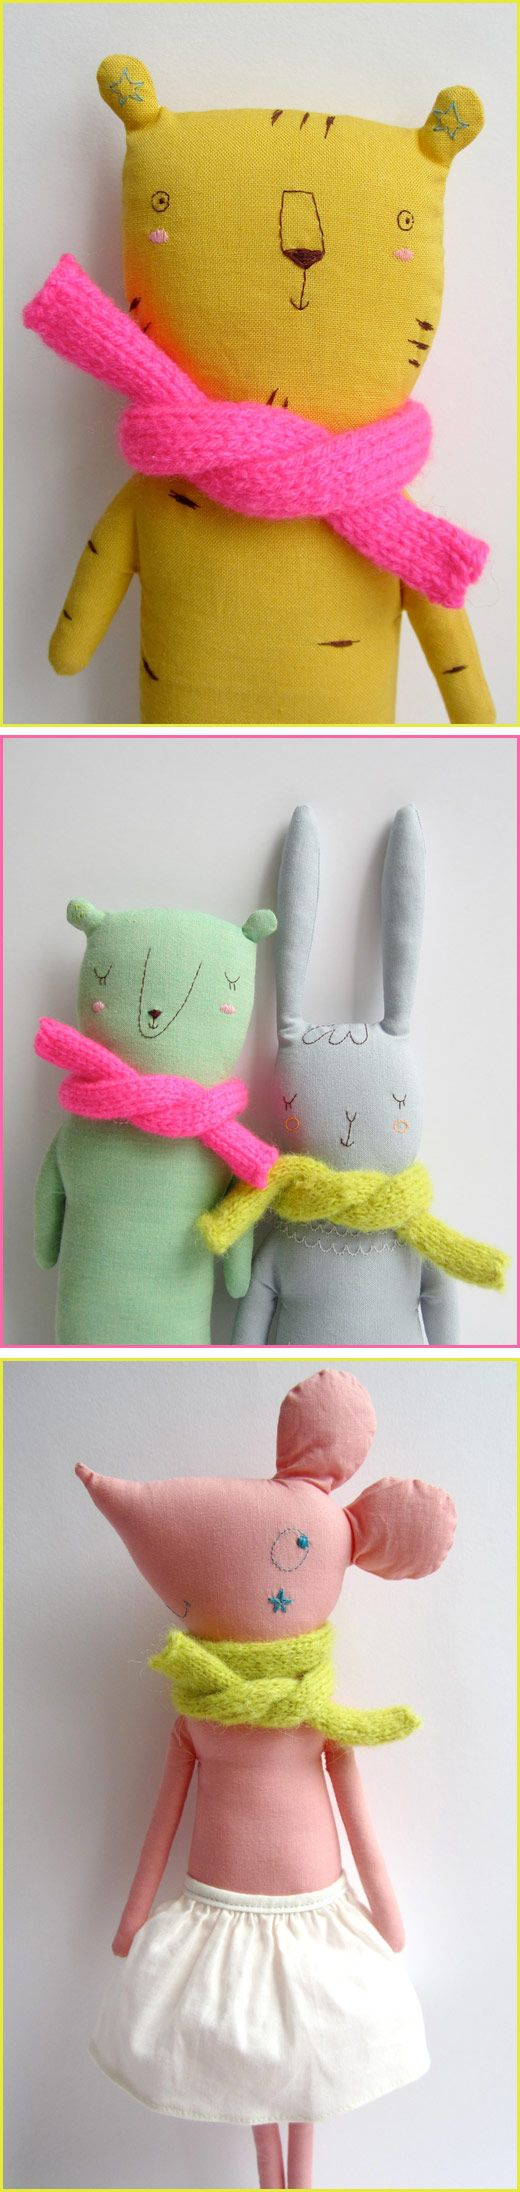 Marina Rachner makes some of the quirkiest softies around town and today I'd like to share a few of my favourites. I love the textured linen fabrics and hand em